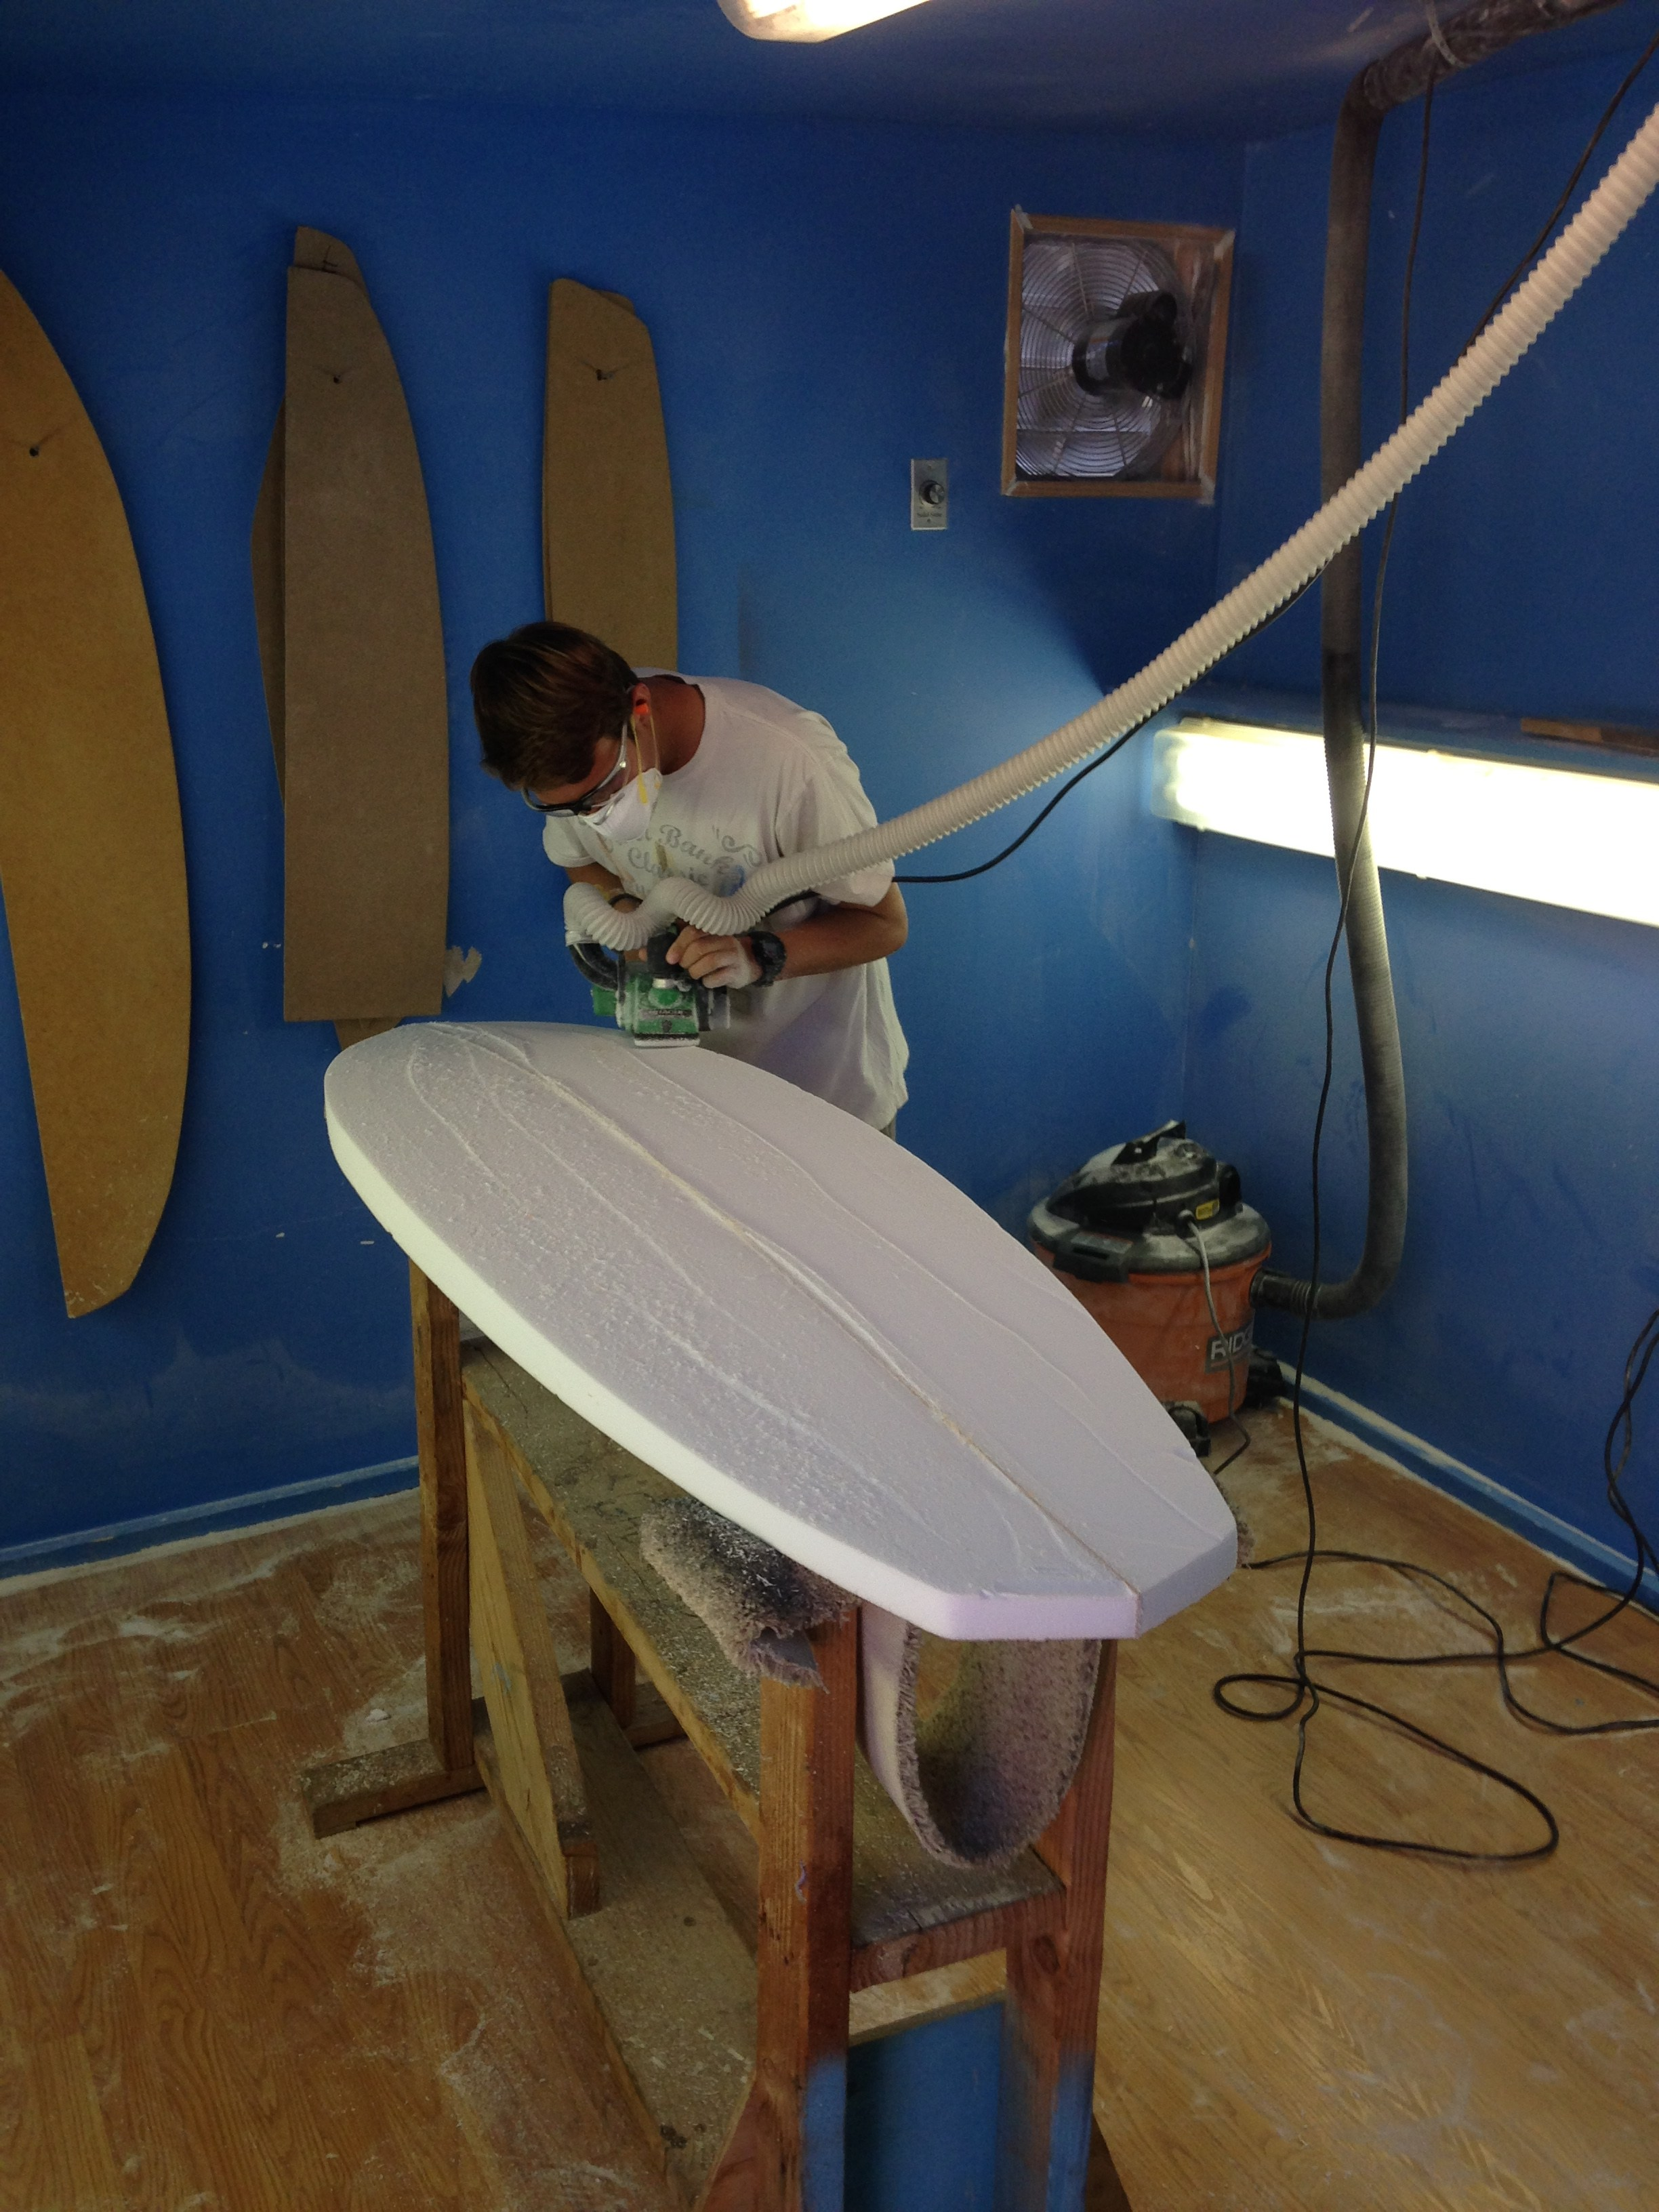 PVHS Surfboard shaping